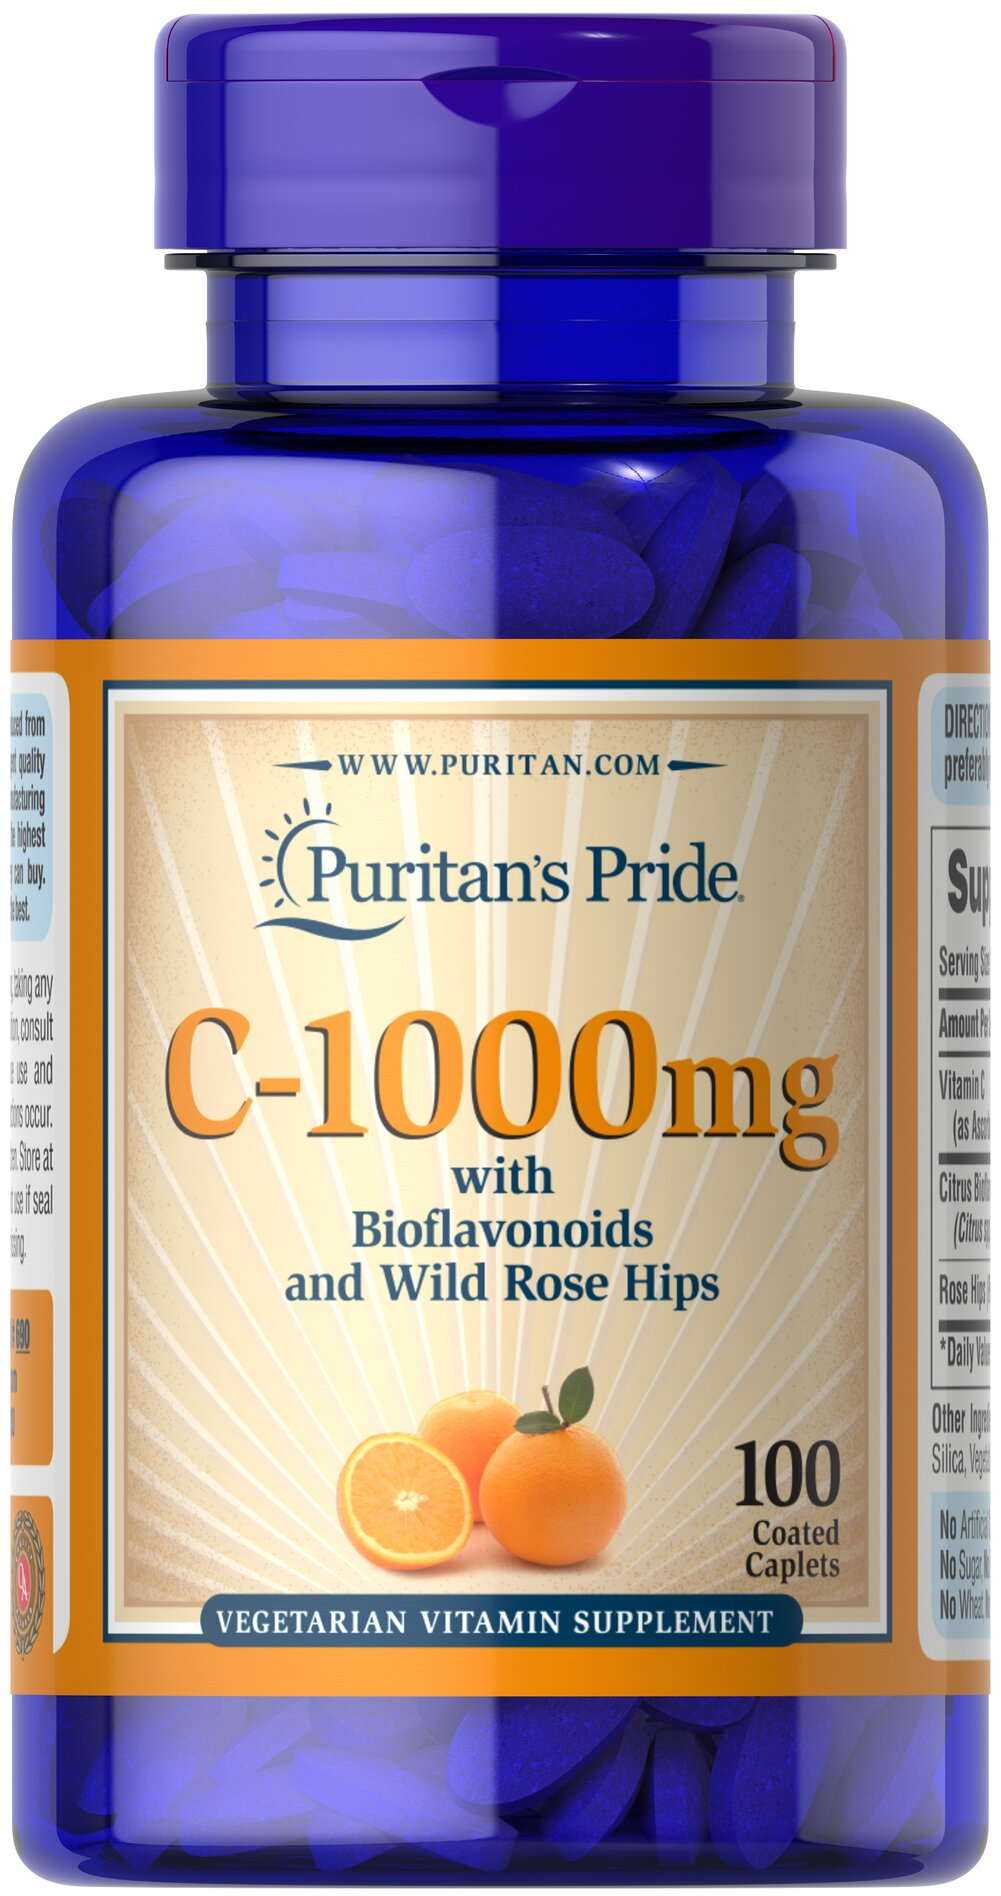 Vitamin C-1000 mg with Bioflavonoids & Rose Hips